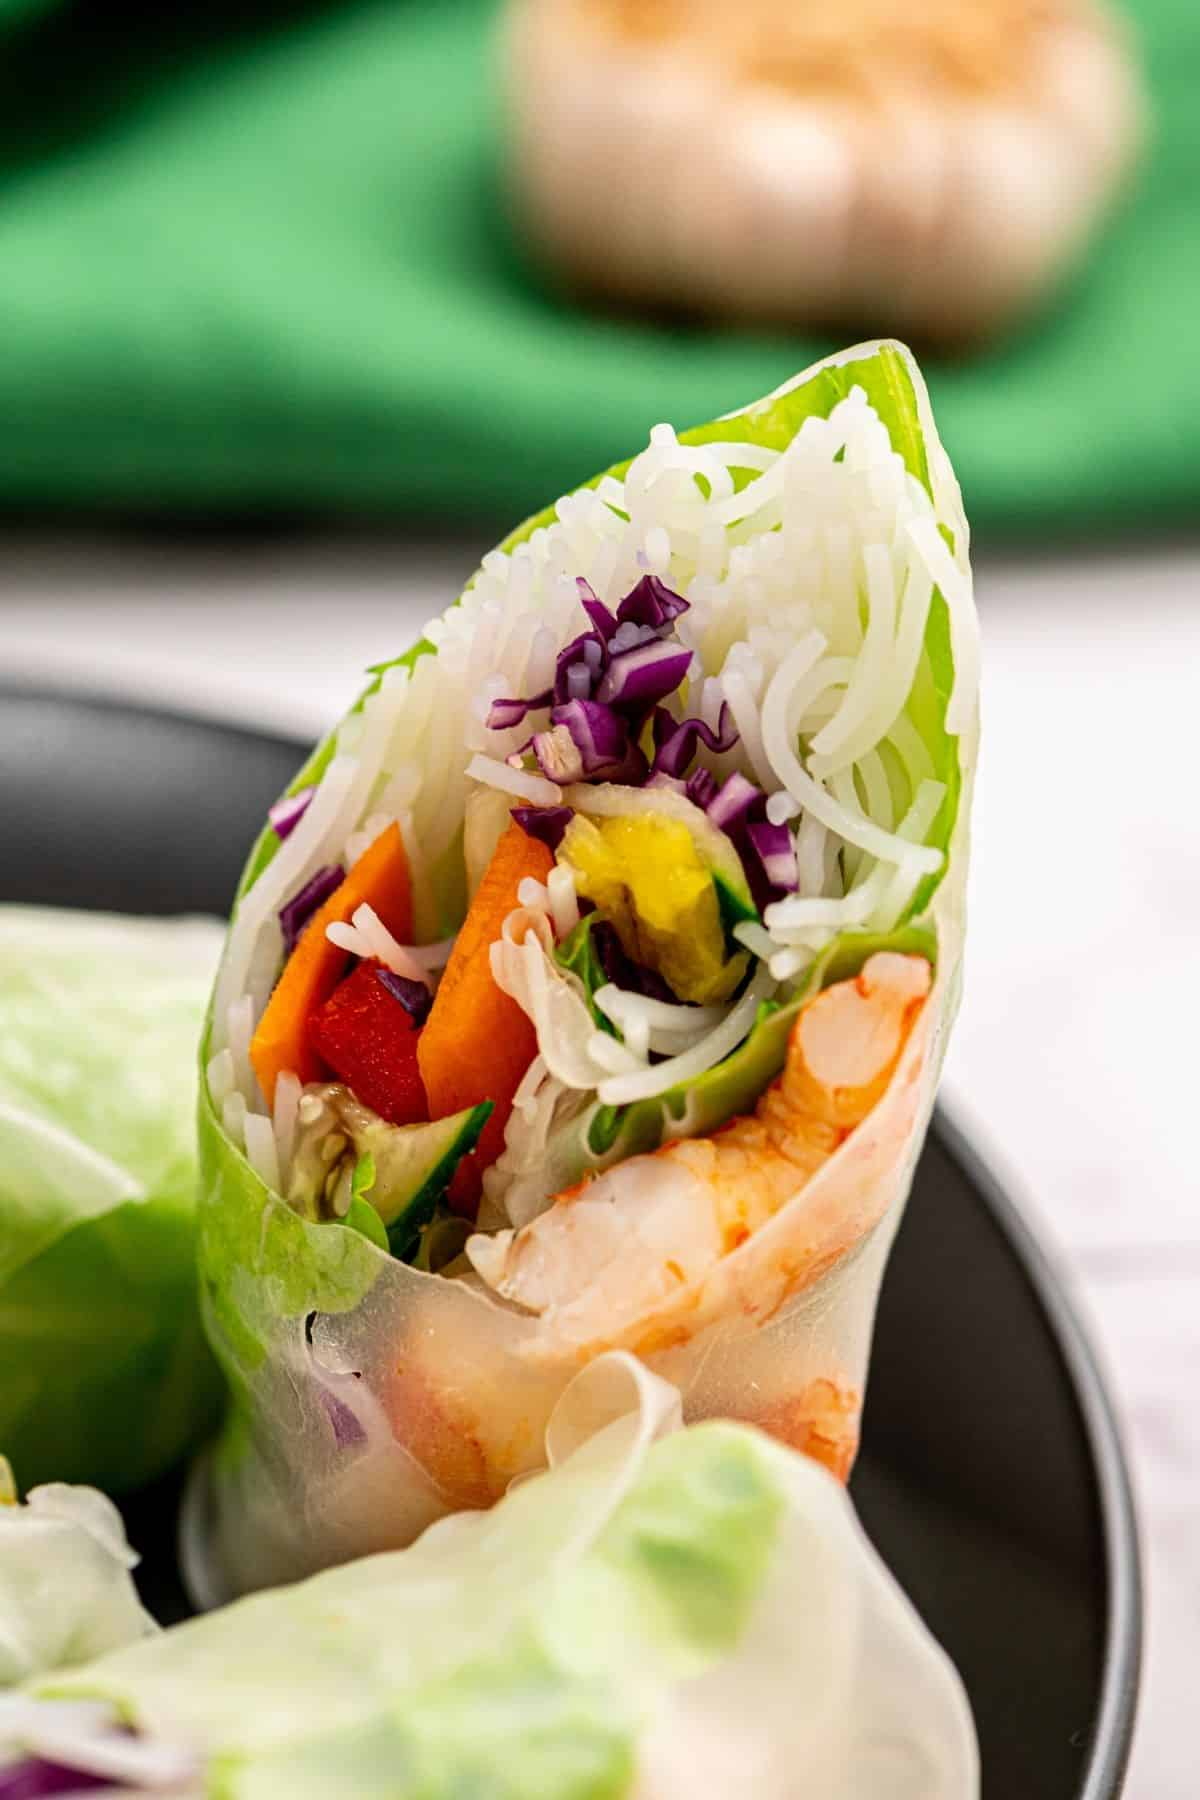 Spring Roll Cut Open showing fresh ingredients.